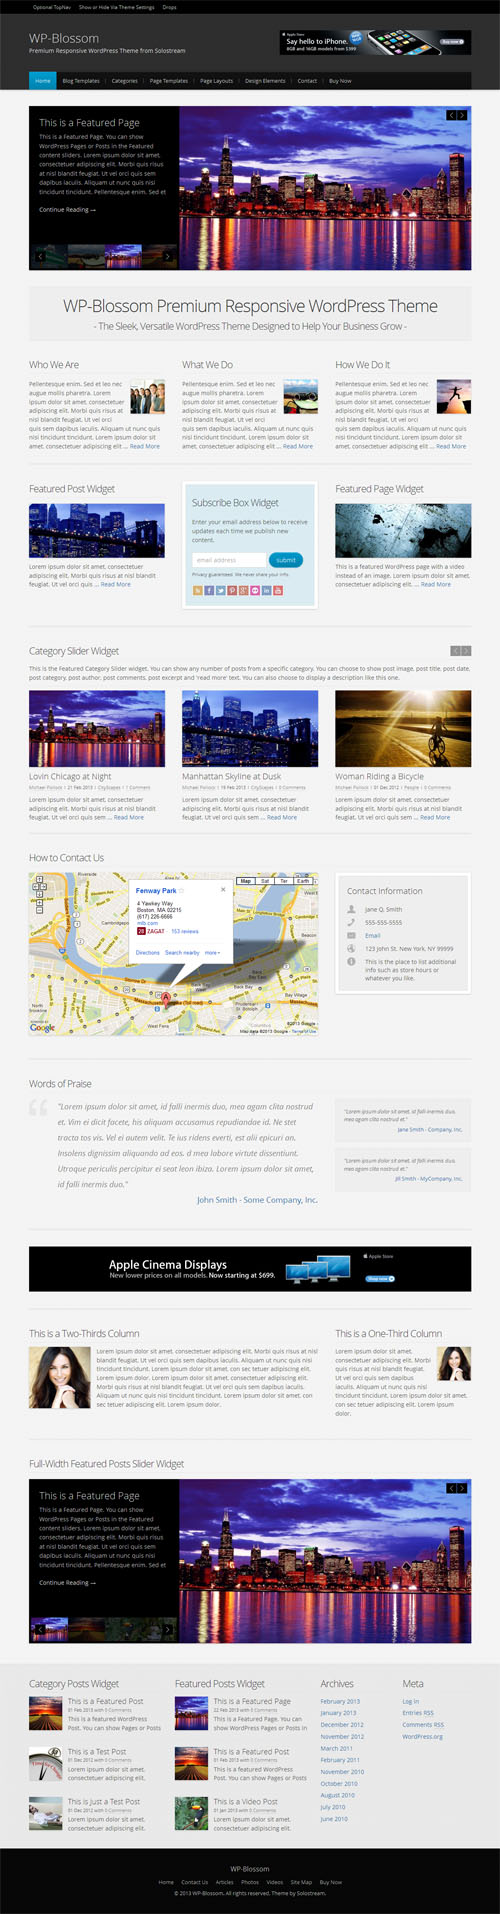 WP Blossom WordPress Theme